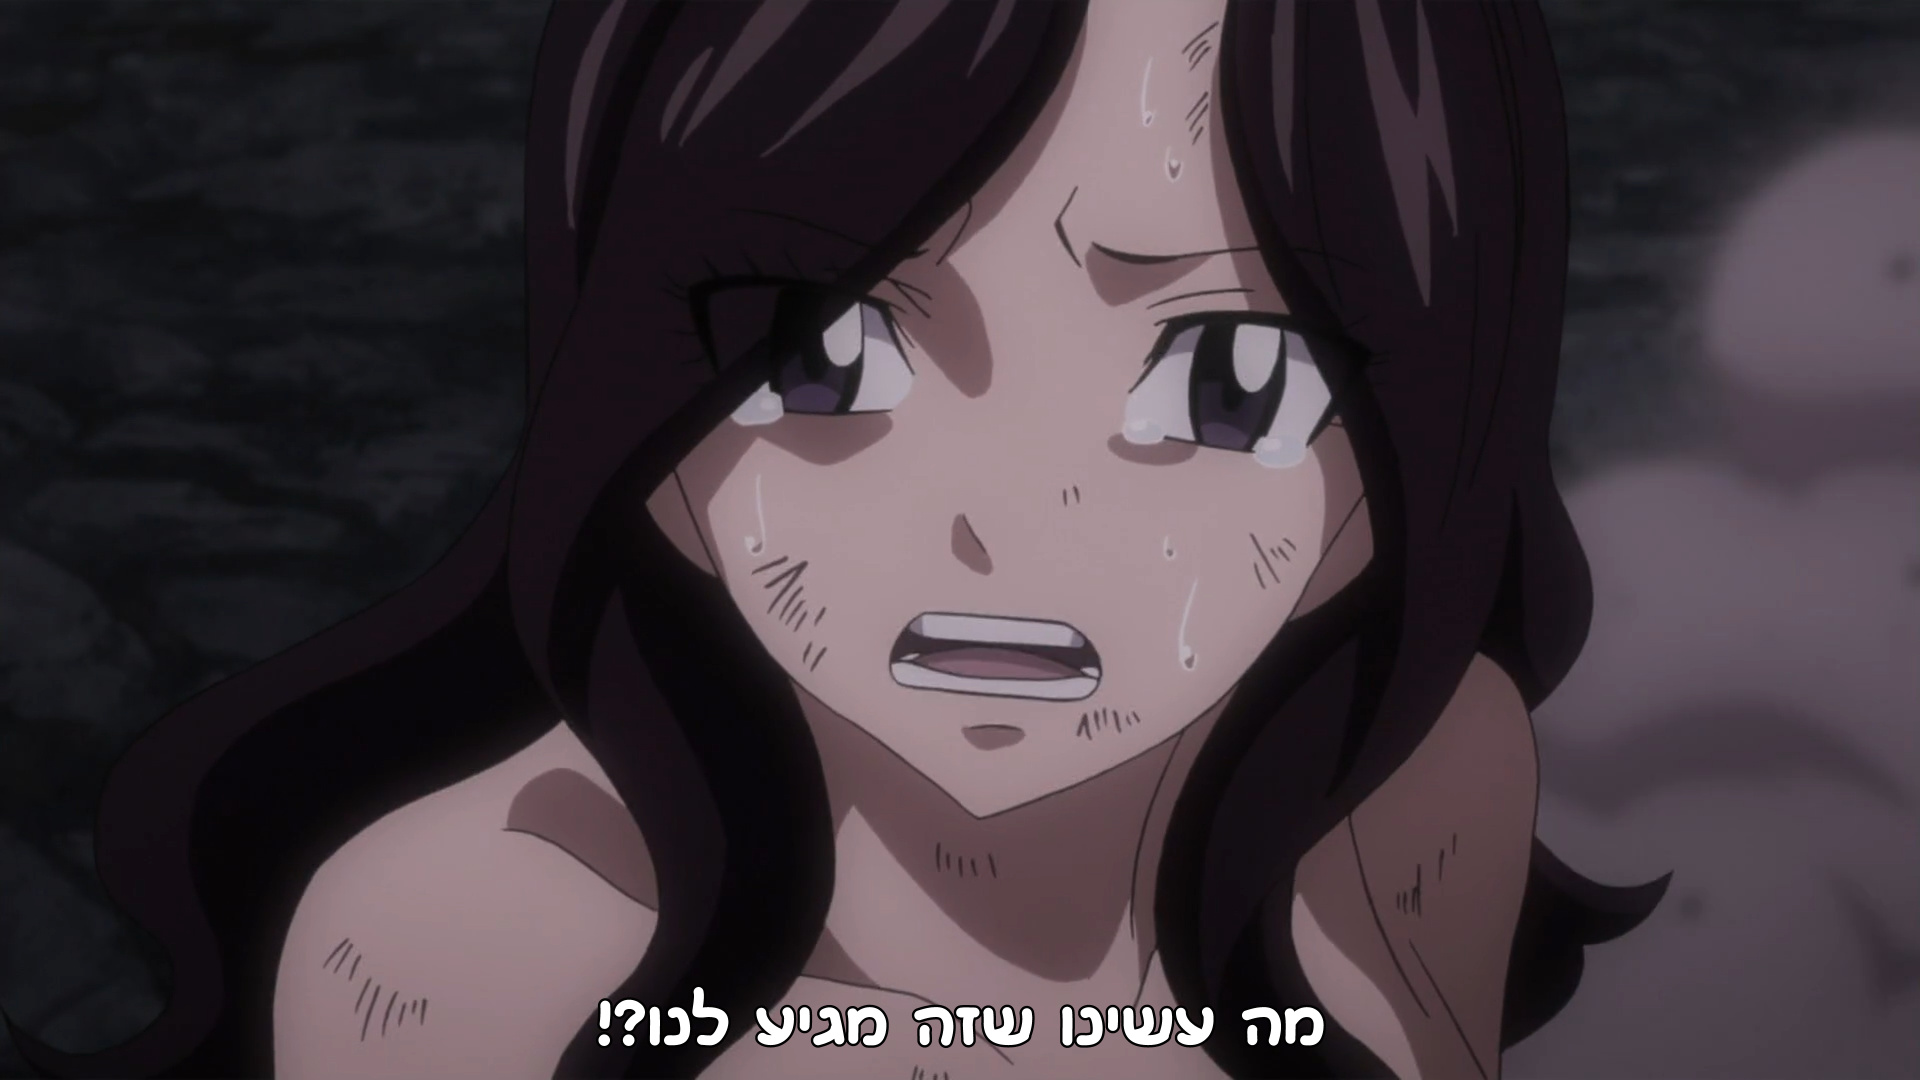 [HorribleSubs] Fairy Tail S2 - 82 [1080p]_001_25037